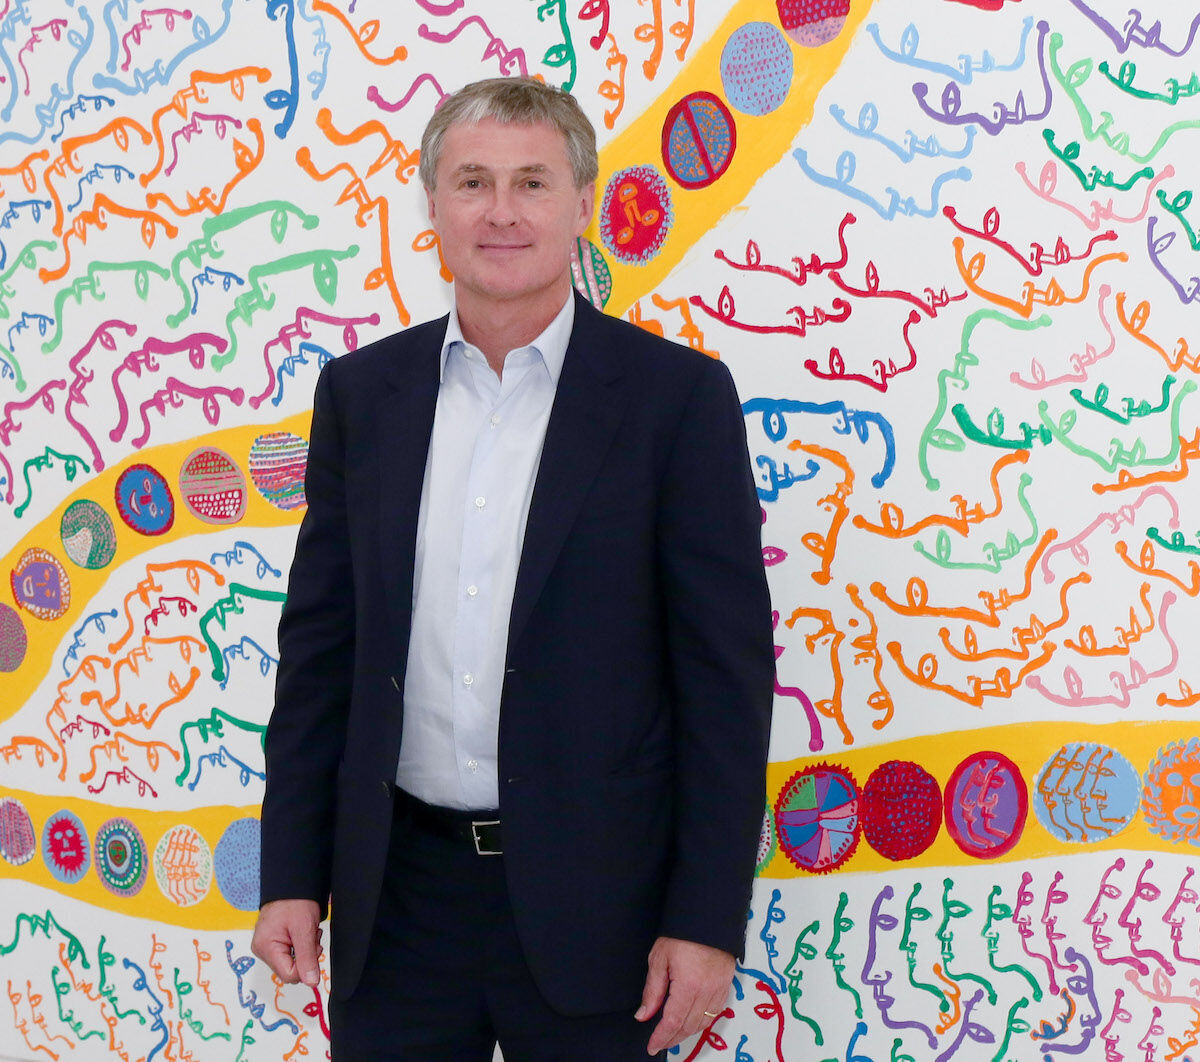 """David Zwirner at Yayoi Kusama's 2013 """"I Who Have Arrived In Heaven"""" Exhibition. Photo by Andrew Toth via Getty Images."""